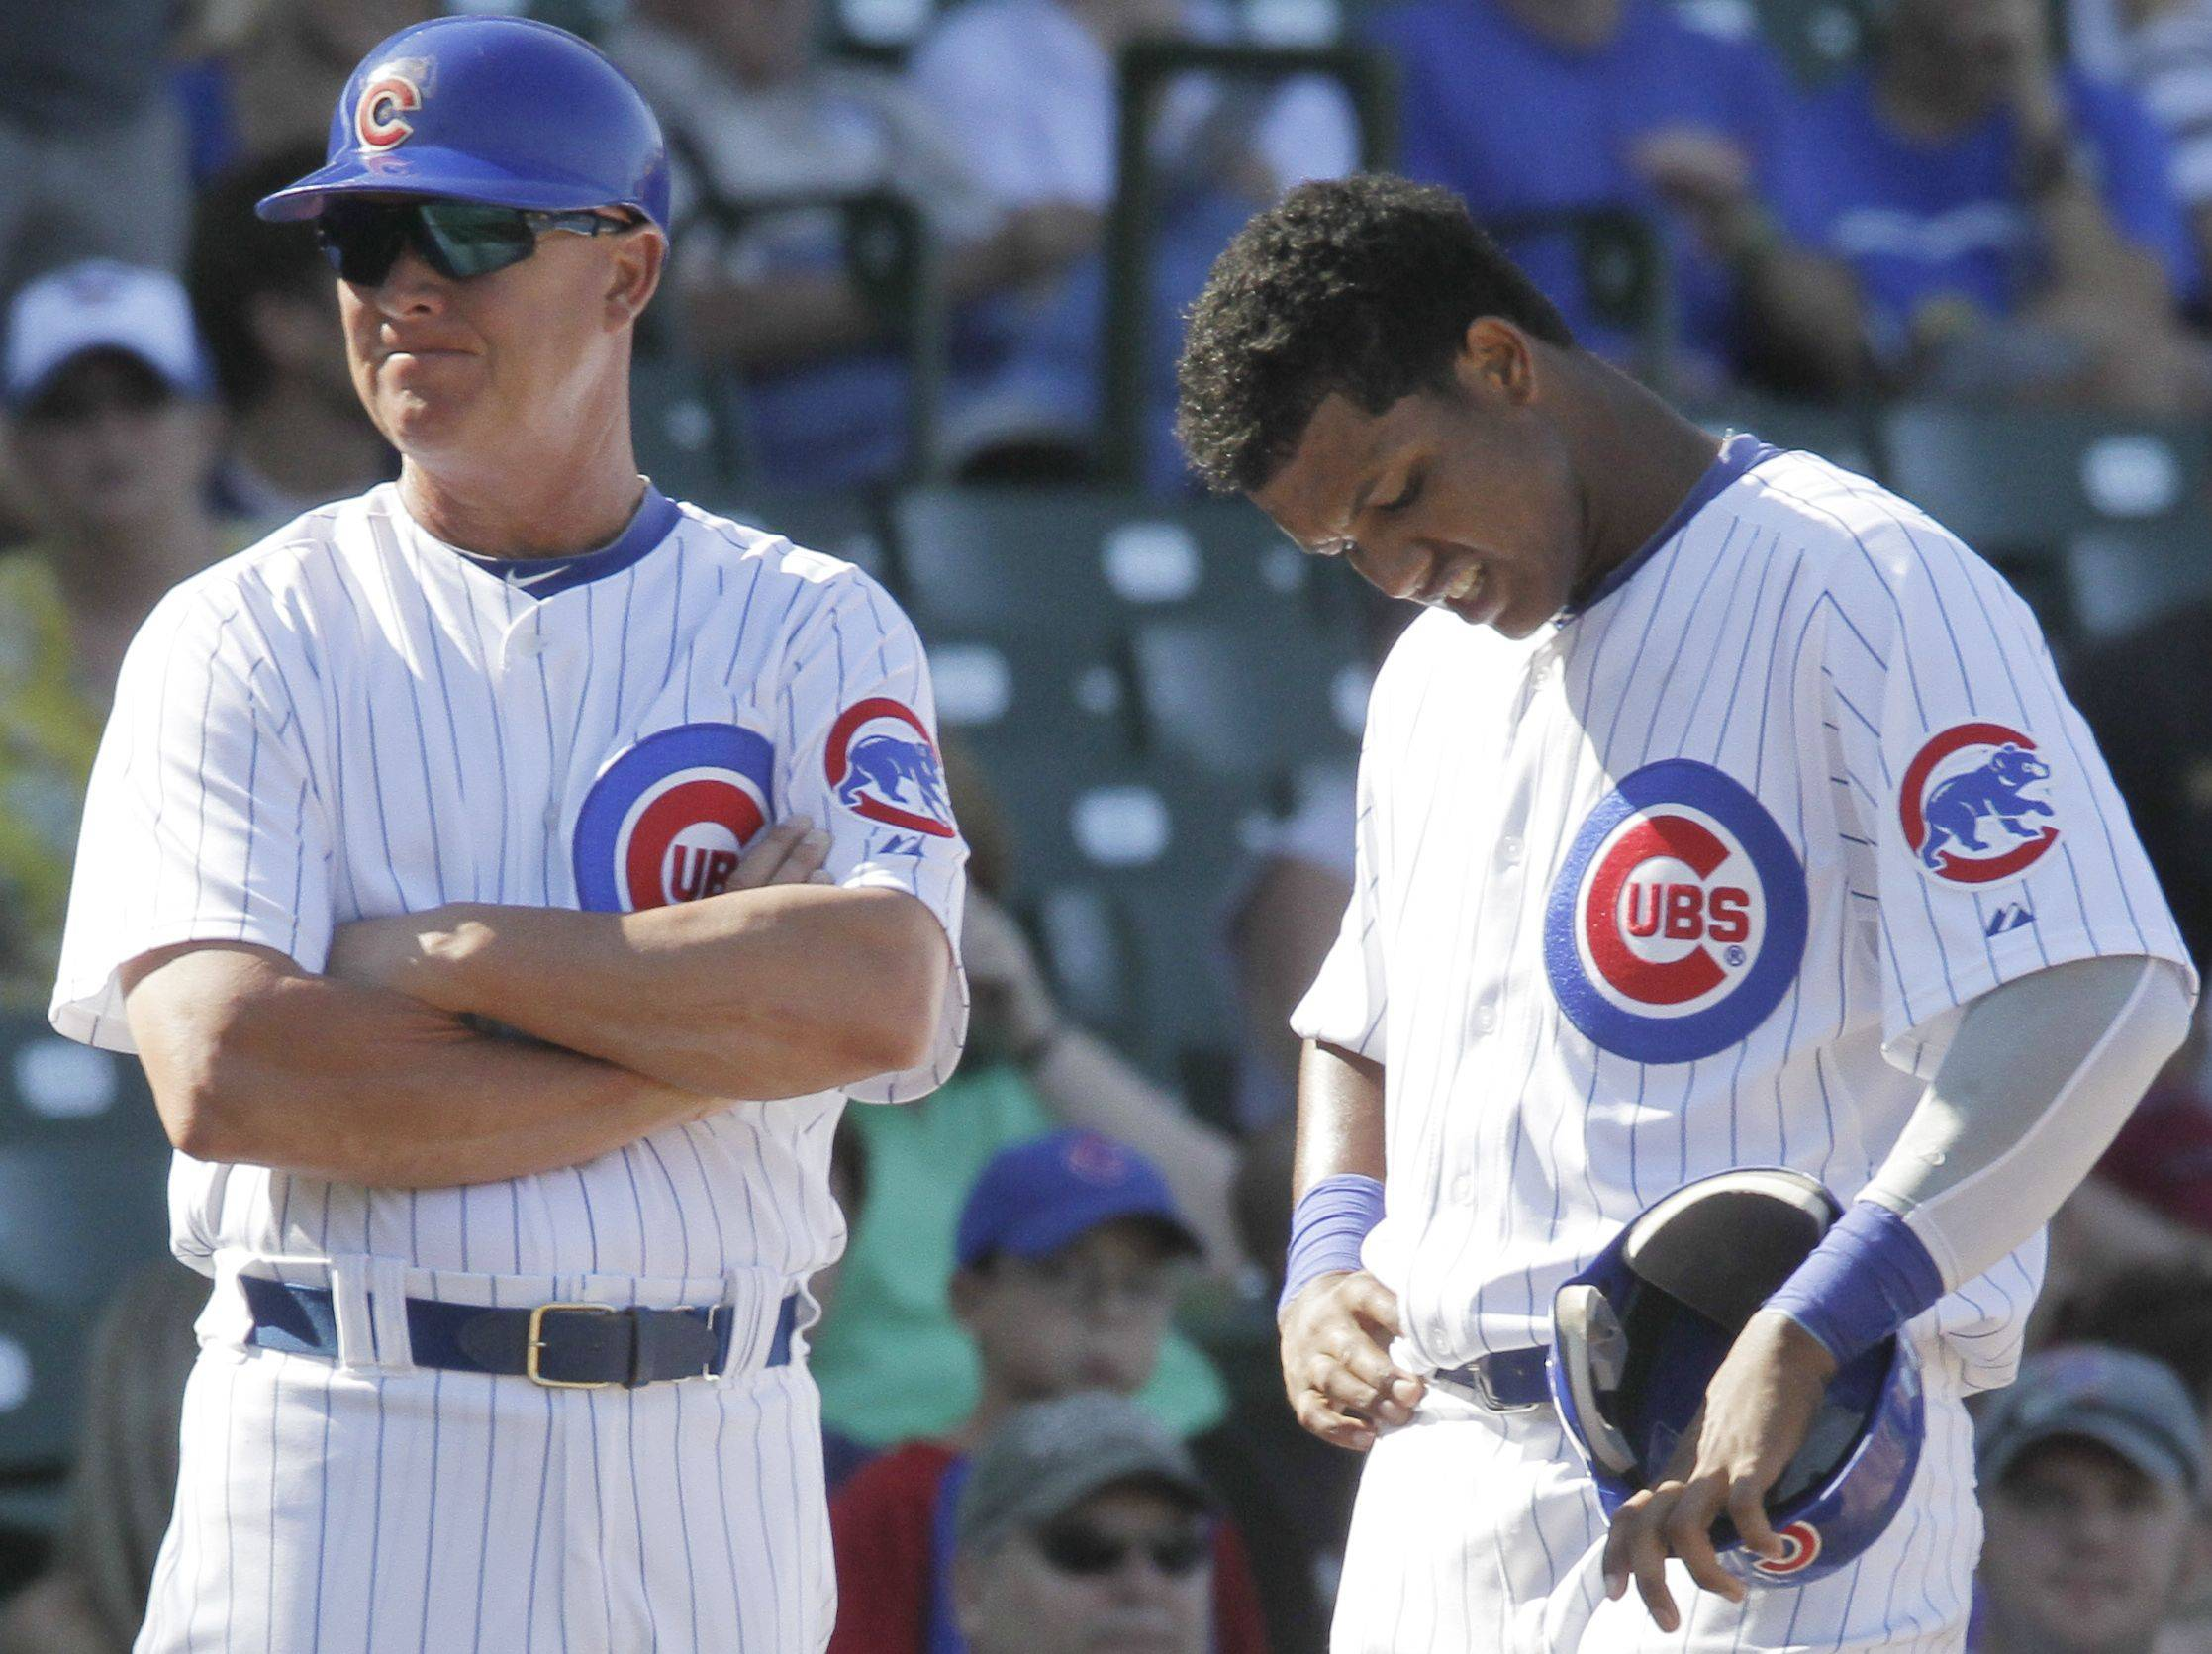 Chicago Cubs third base coach Mike Quade, left, and Starlin Castro react as their team plays against the Atlanta Braves during the ninth inning of a baseball game.